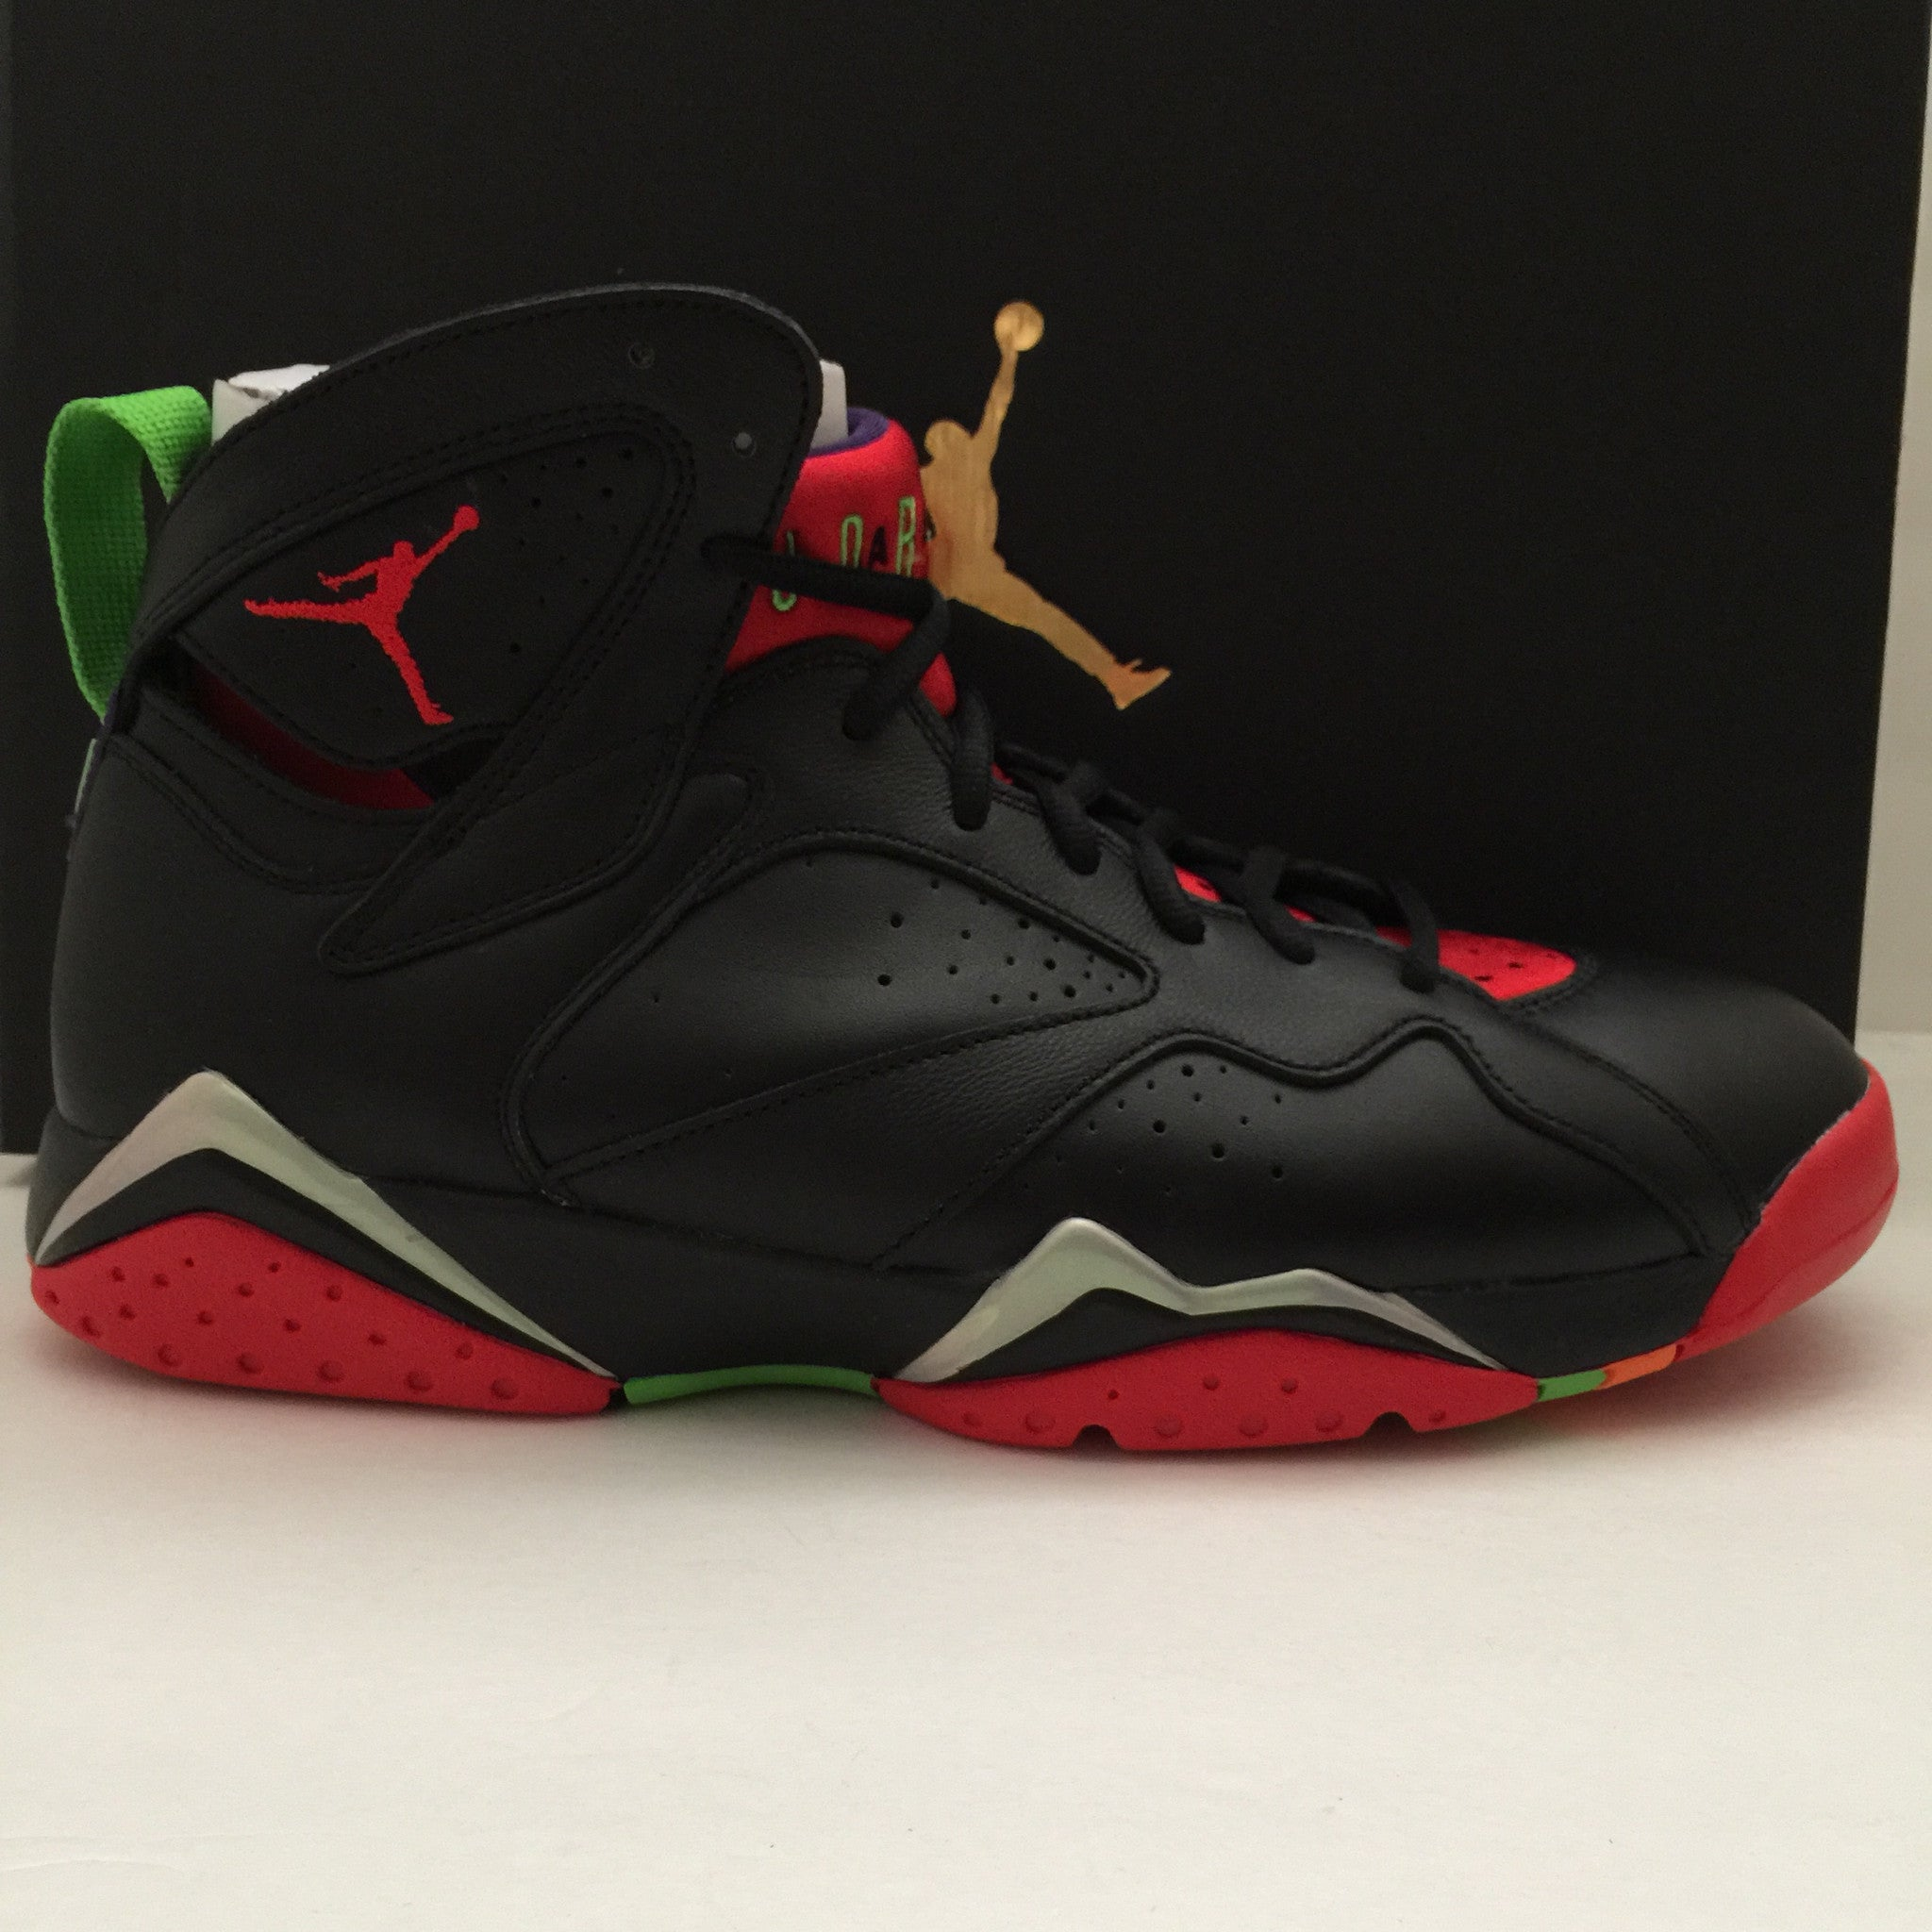 DS Nike Air Jordan 7 Retro Marvin The Martian Size 9.5/Size 10 - DOPEFOOT  - 1